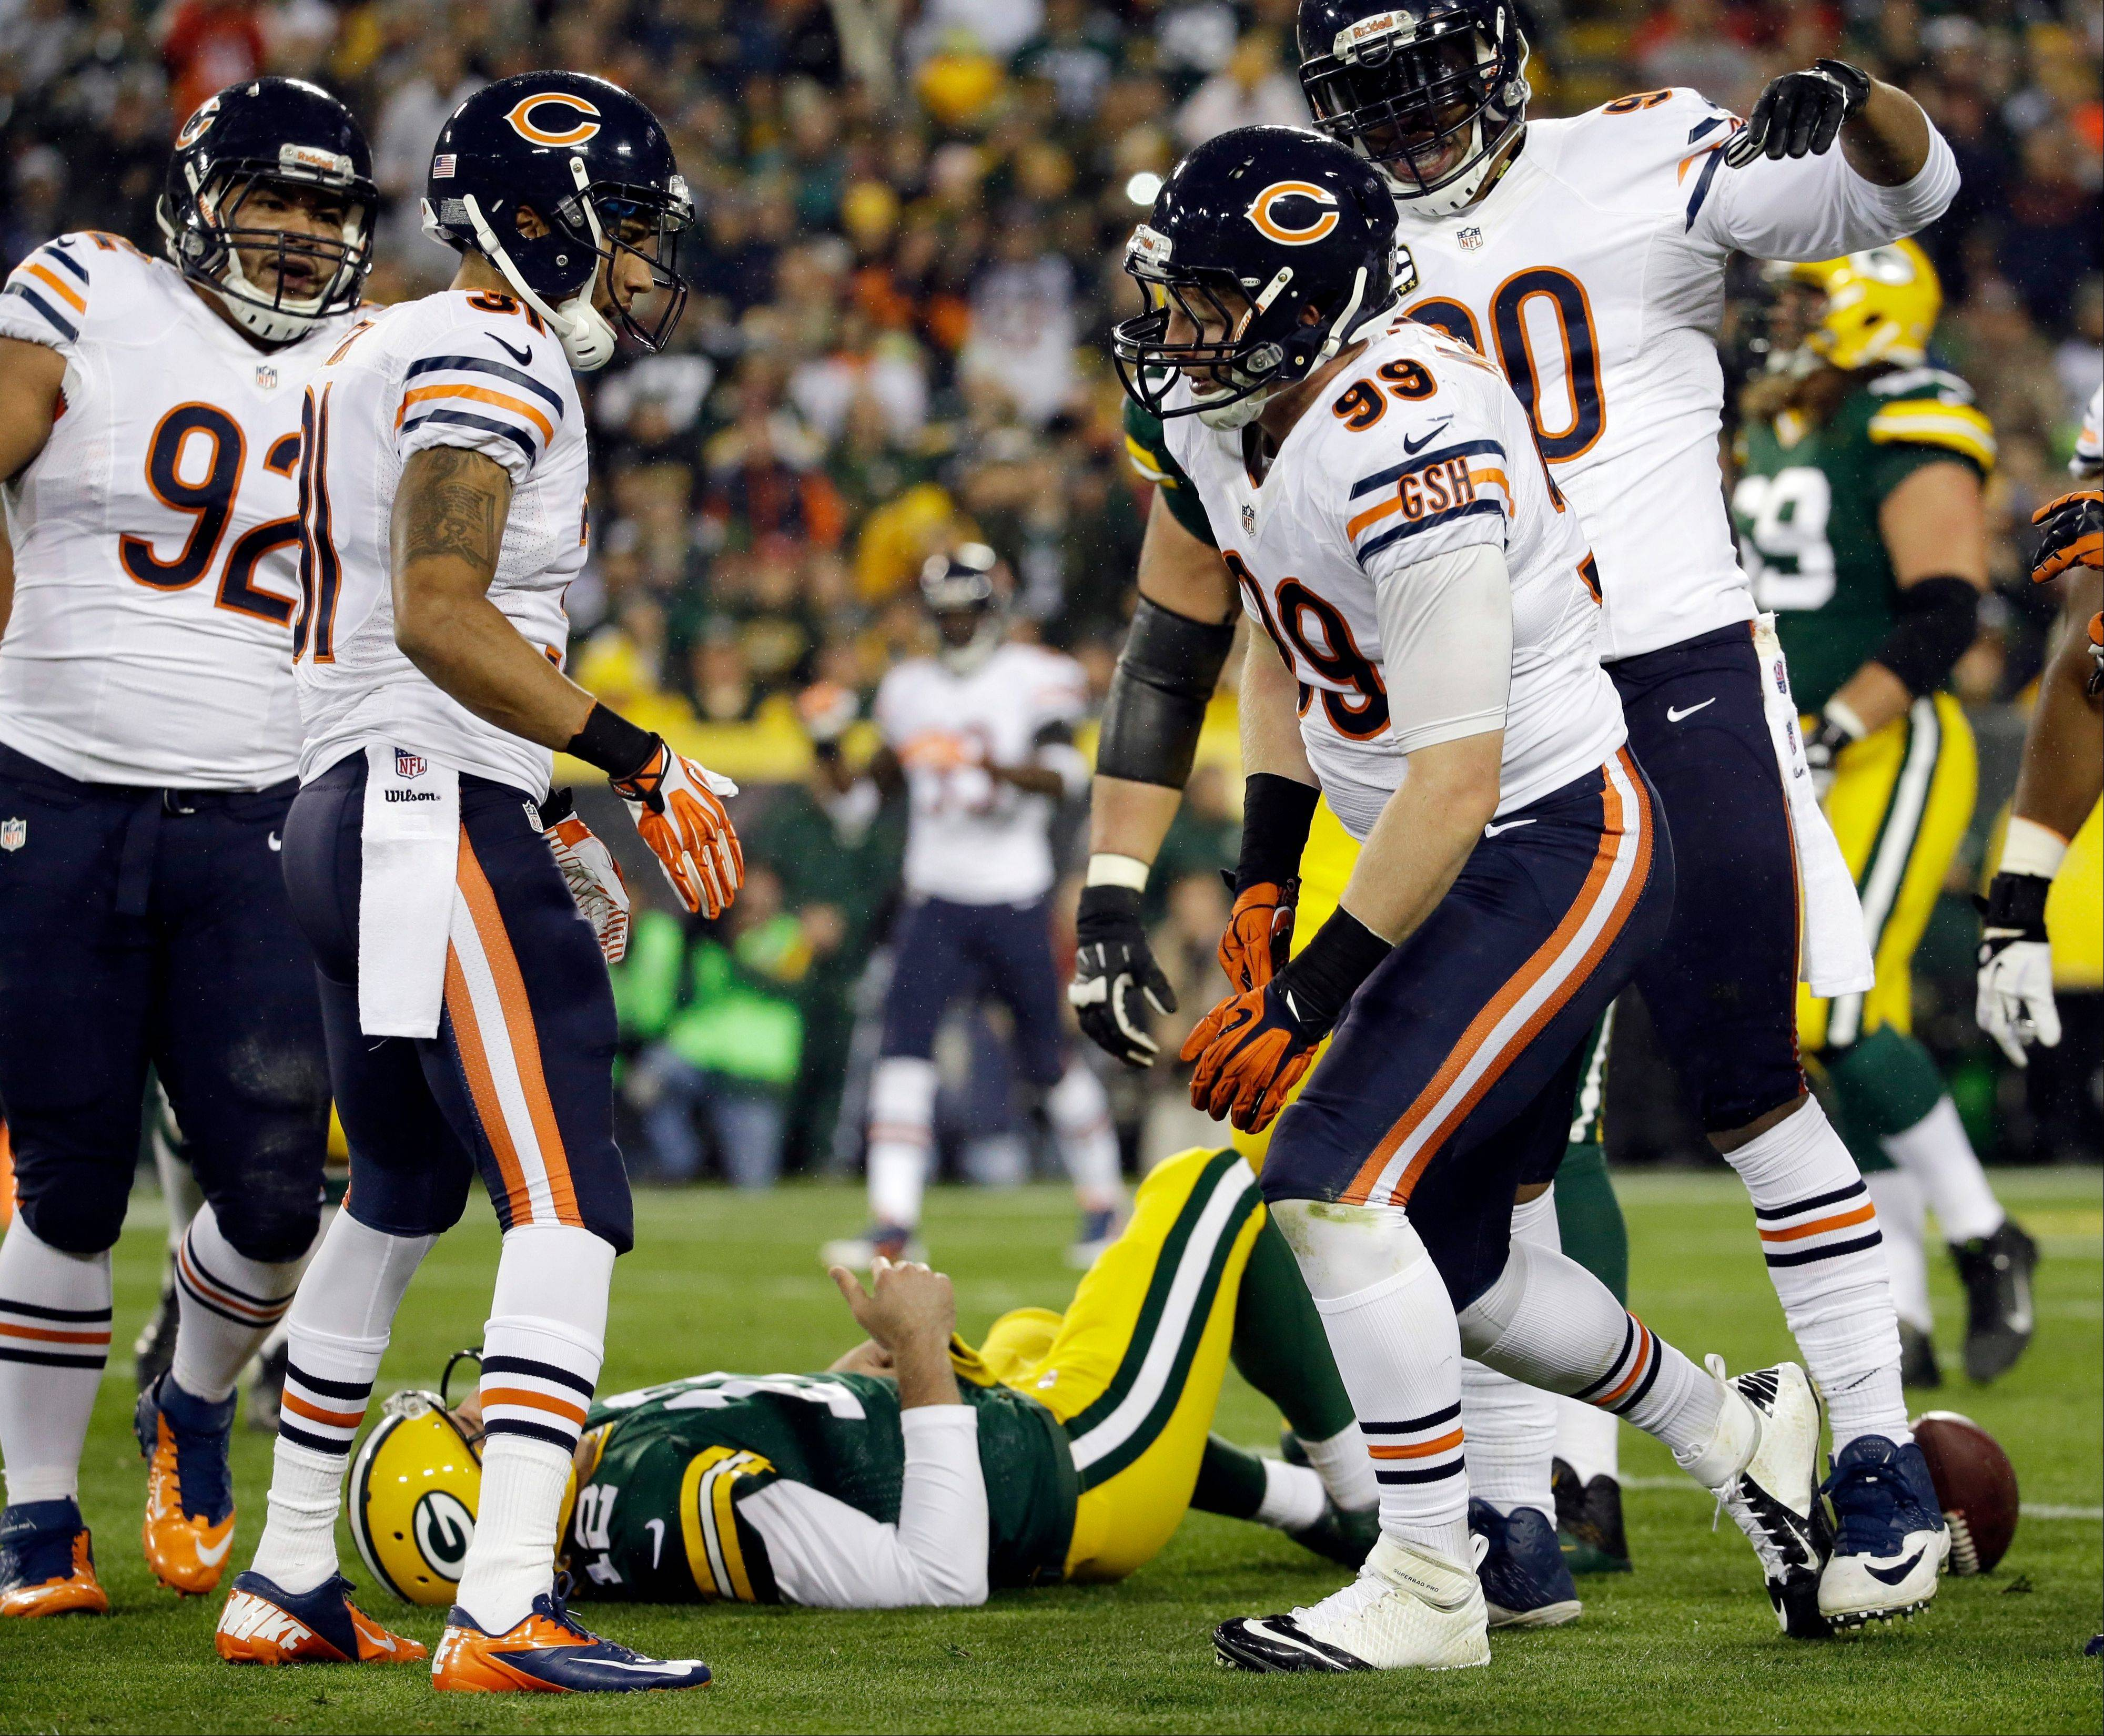 Green Bay Packers' Aaron Rodgers lays on the ground after being sacked by Chicago Bears' Shea McClellin during the first half .